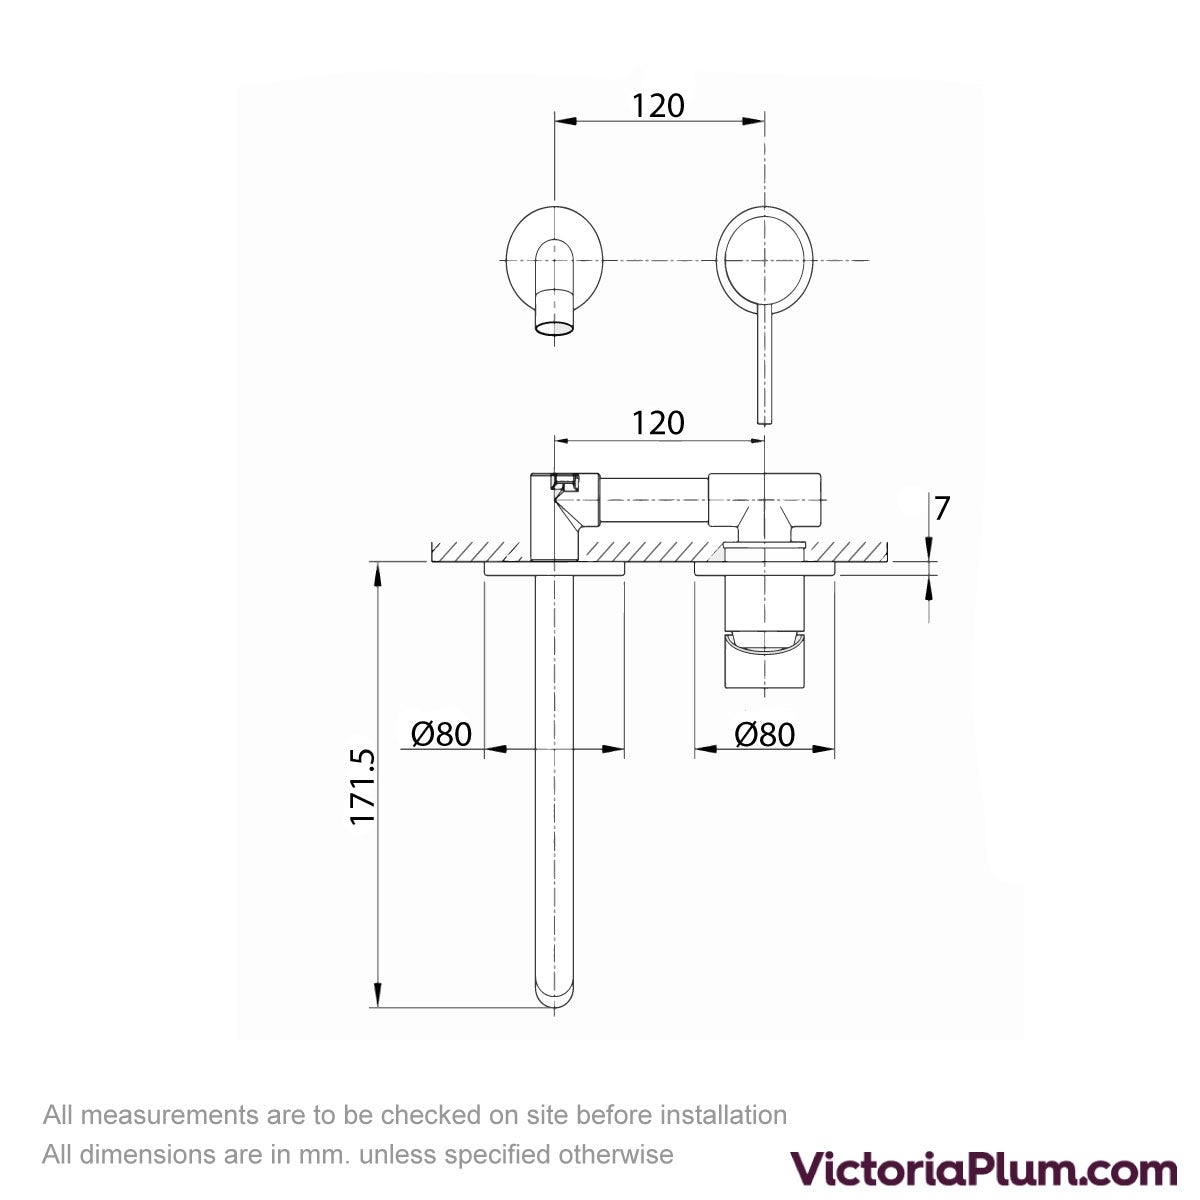 Dimensions for Mode Spencer round wall mounted brushed nickel basin mixer tap